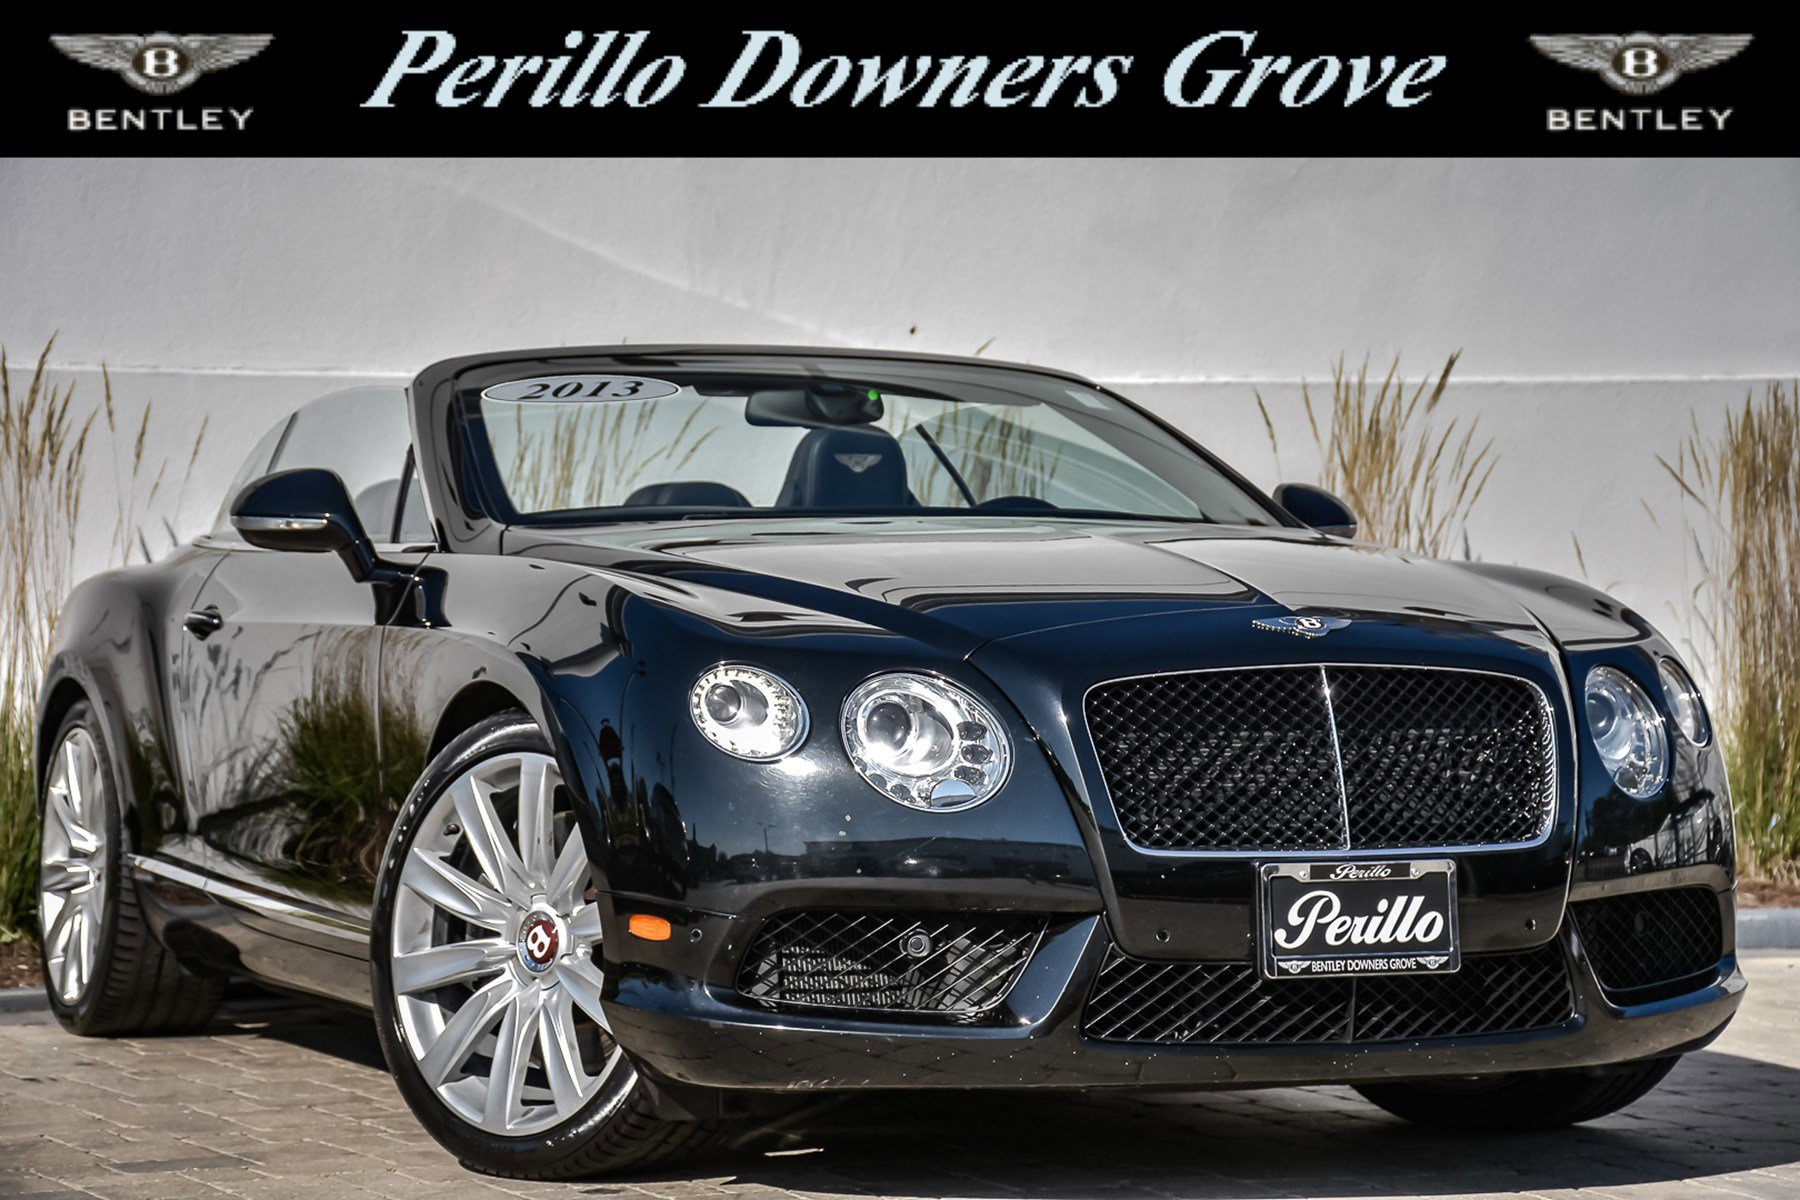 2013 Bentley Continental GT V8 Convertible image